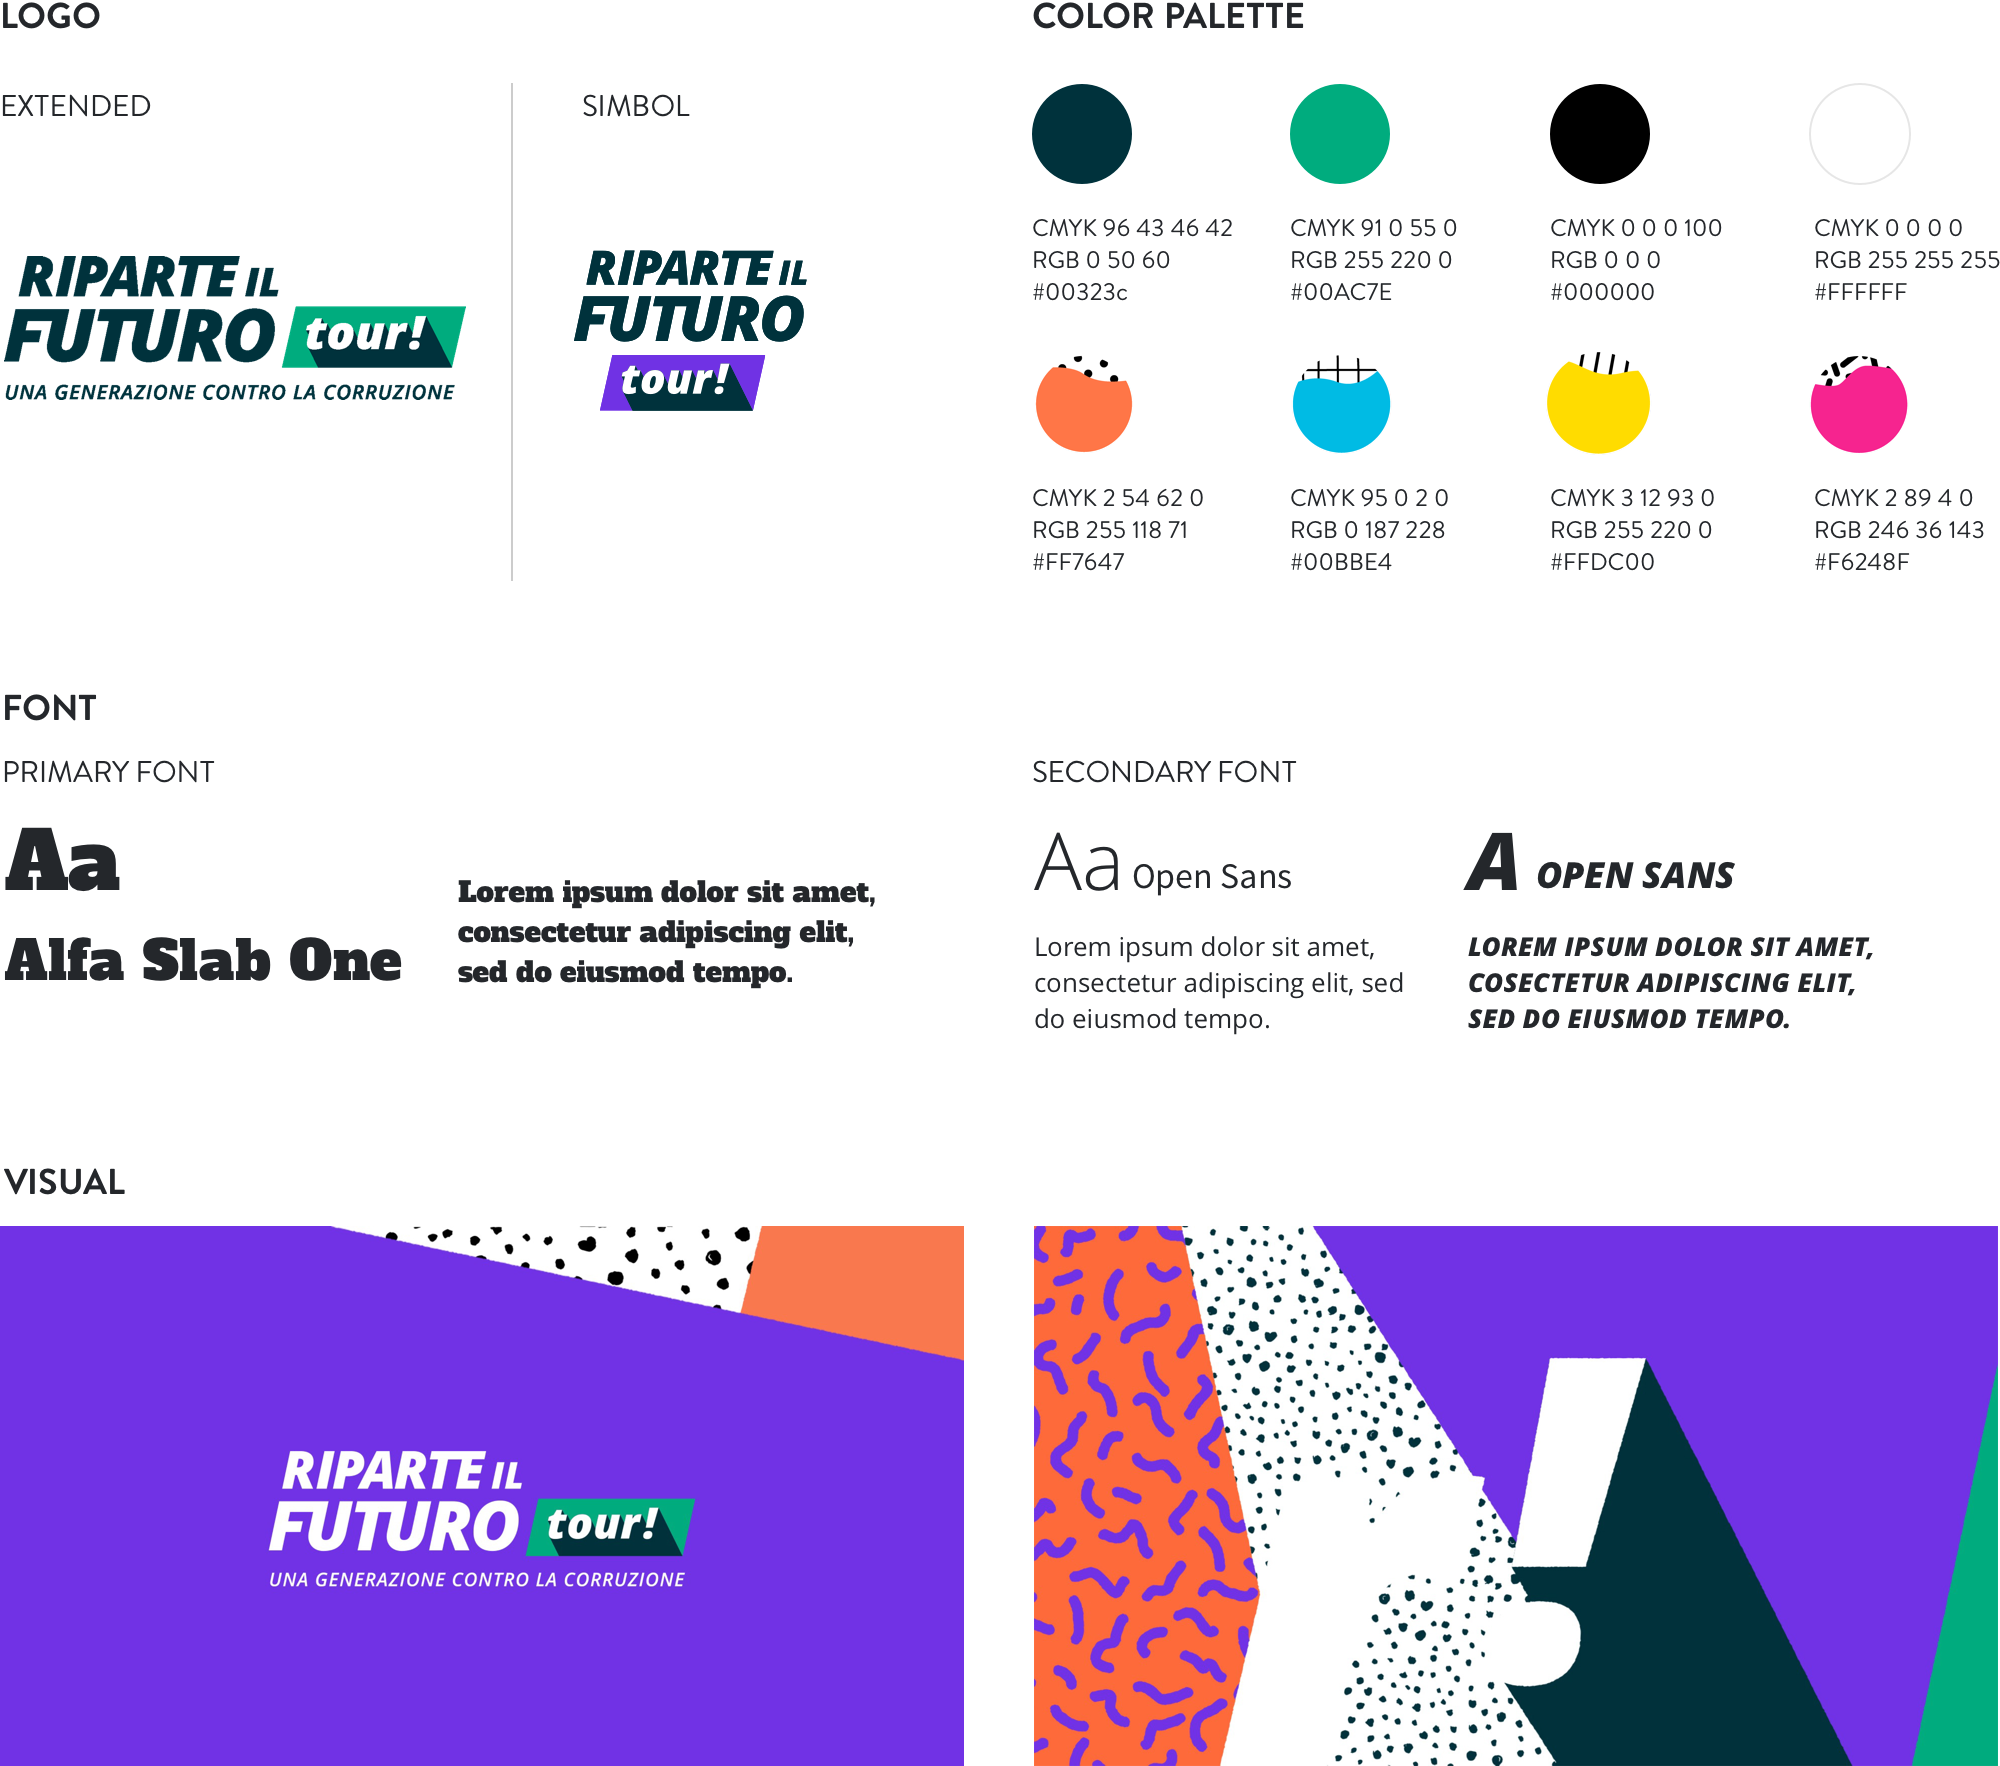 image of the logo, the colour palette and the fonts selected for riparte il futuro tour